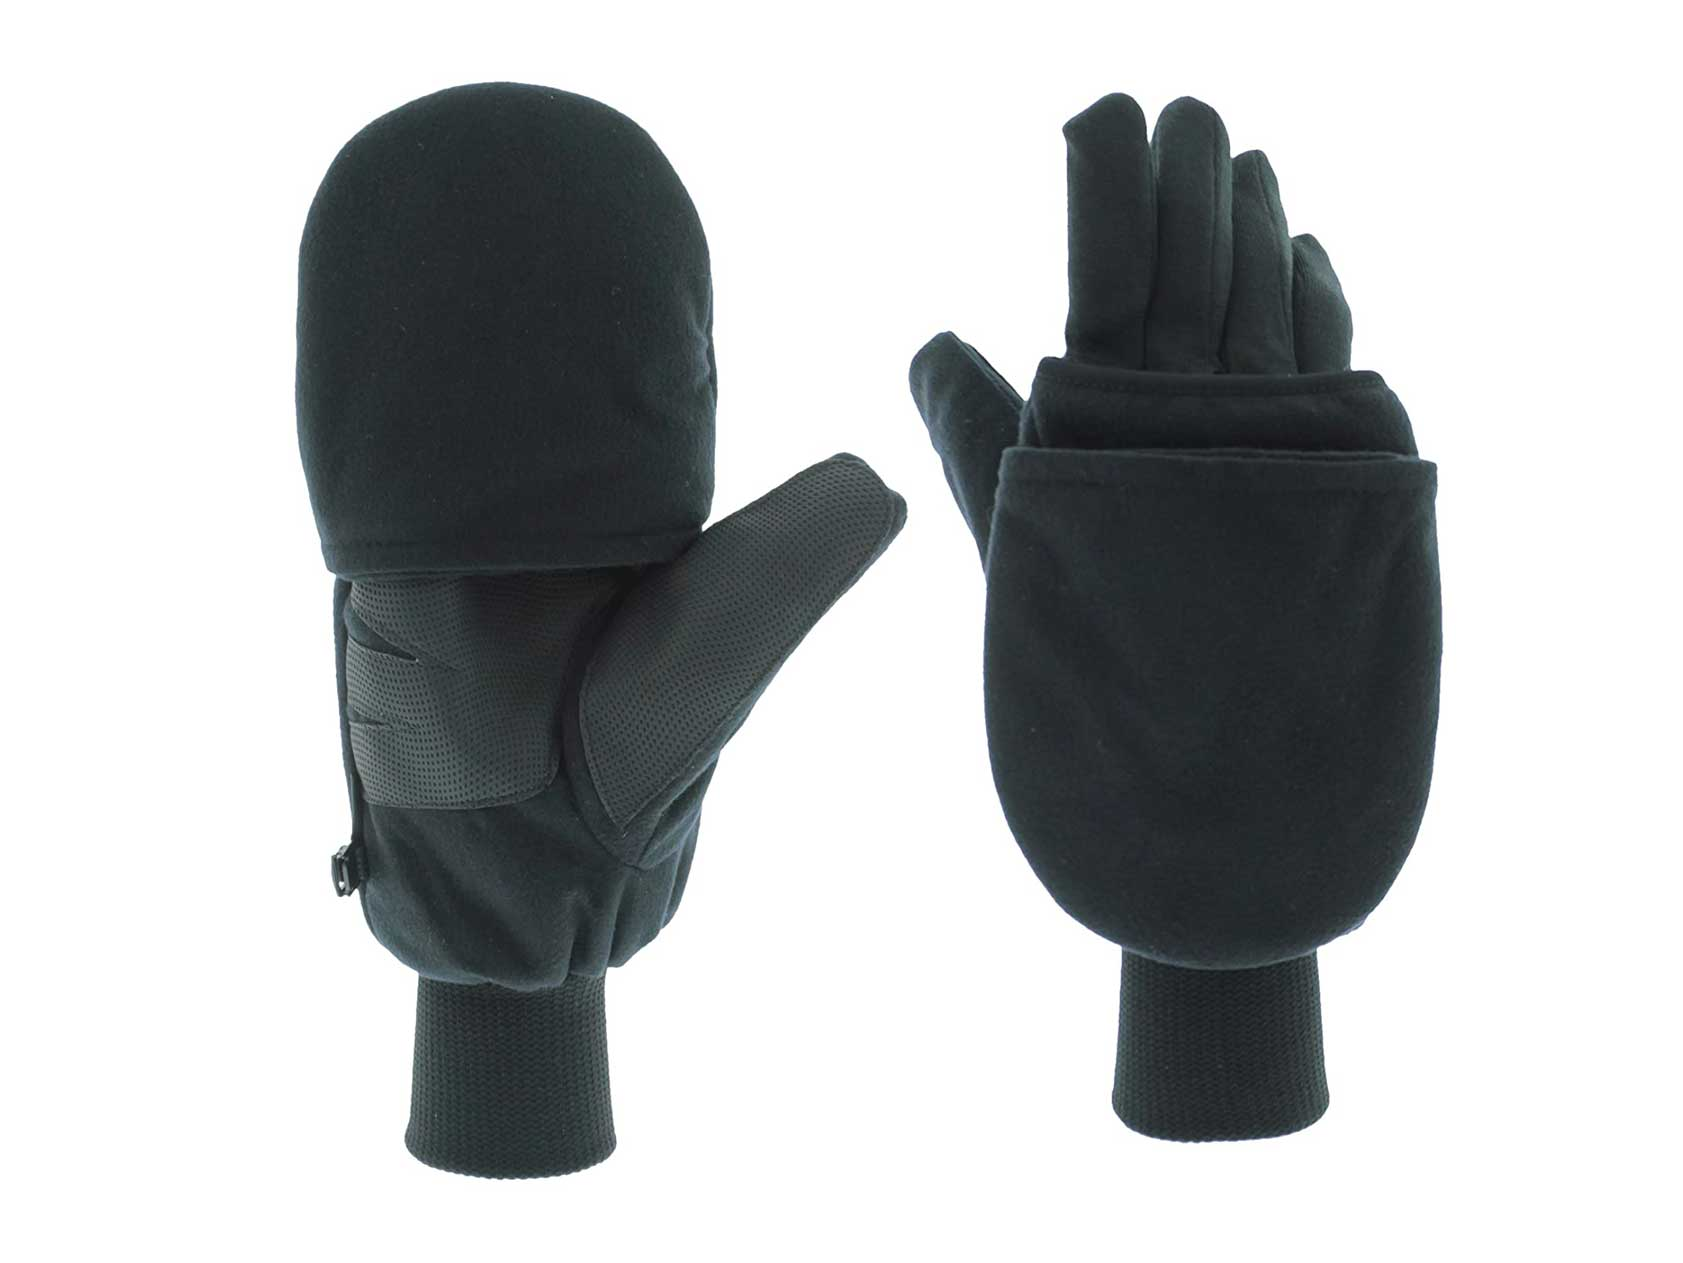 Heat Factory Gloves with Pop-Top Mittens, with Hand Heat Warmer Pockets, Black, Small